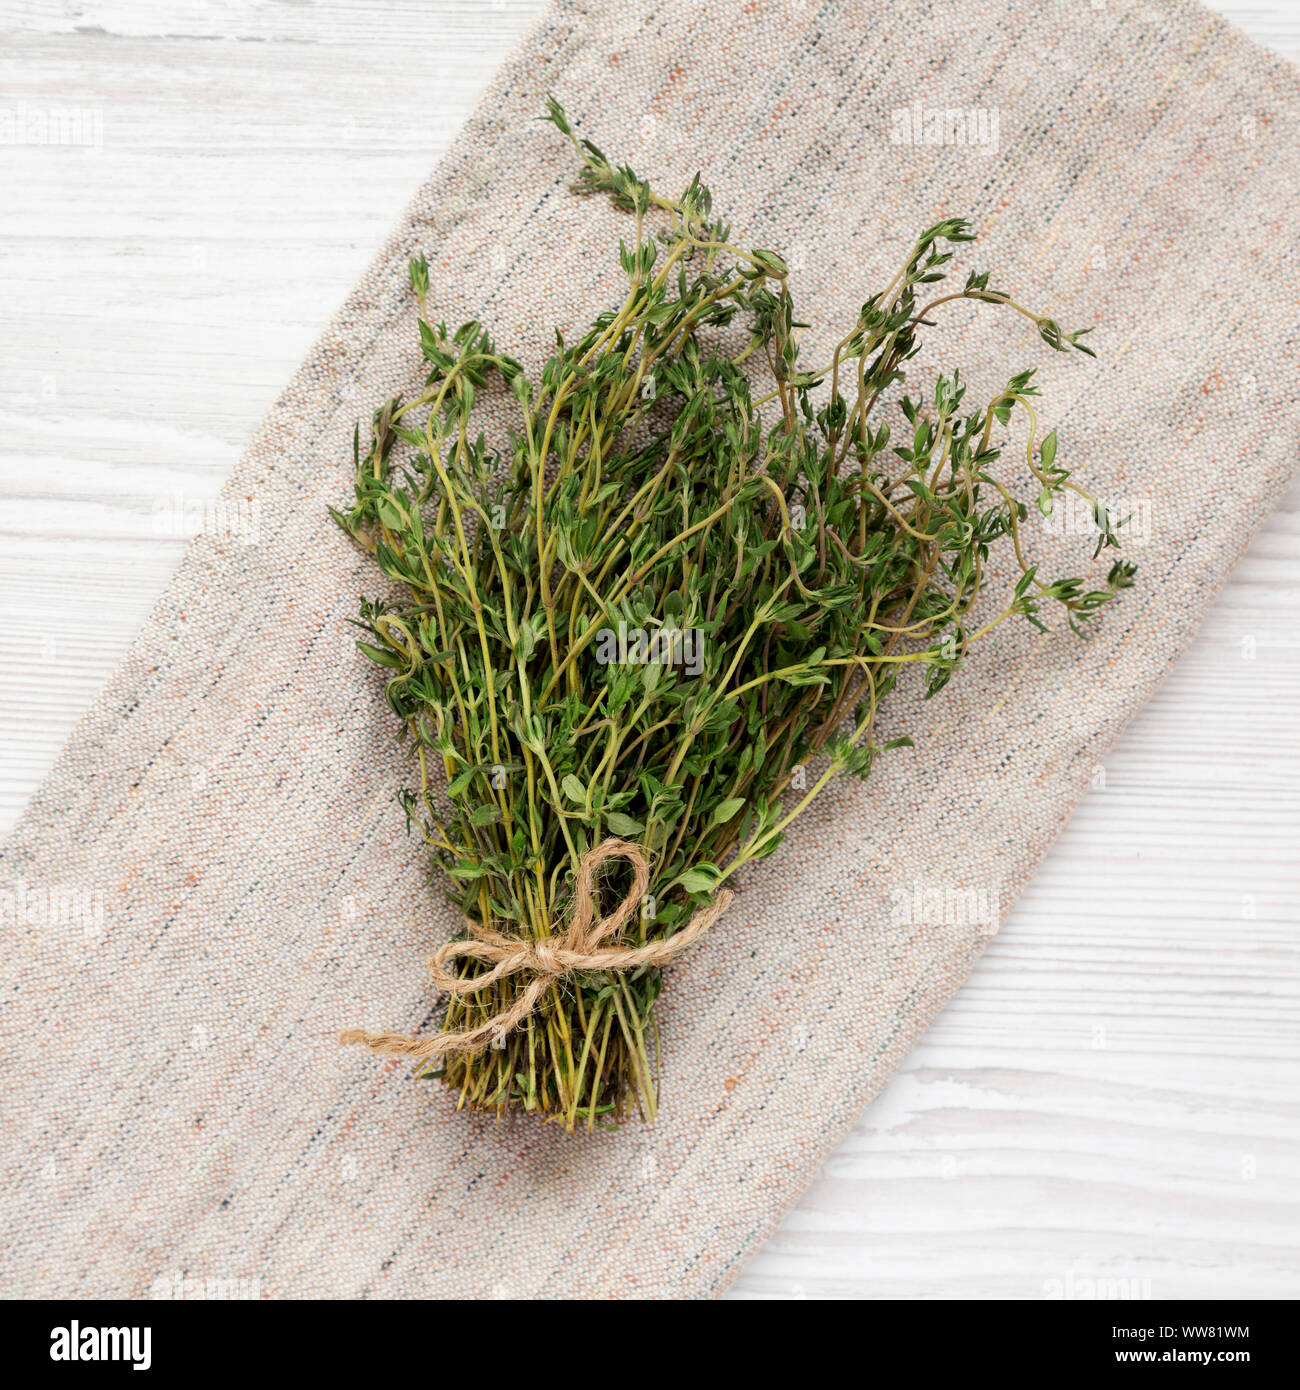 Top view, raw organic fresh thyme on cloth. Flat lay, overhead, from above. Close-up. Stock Photo